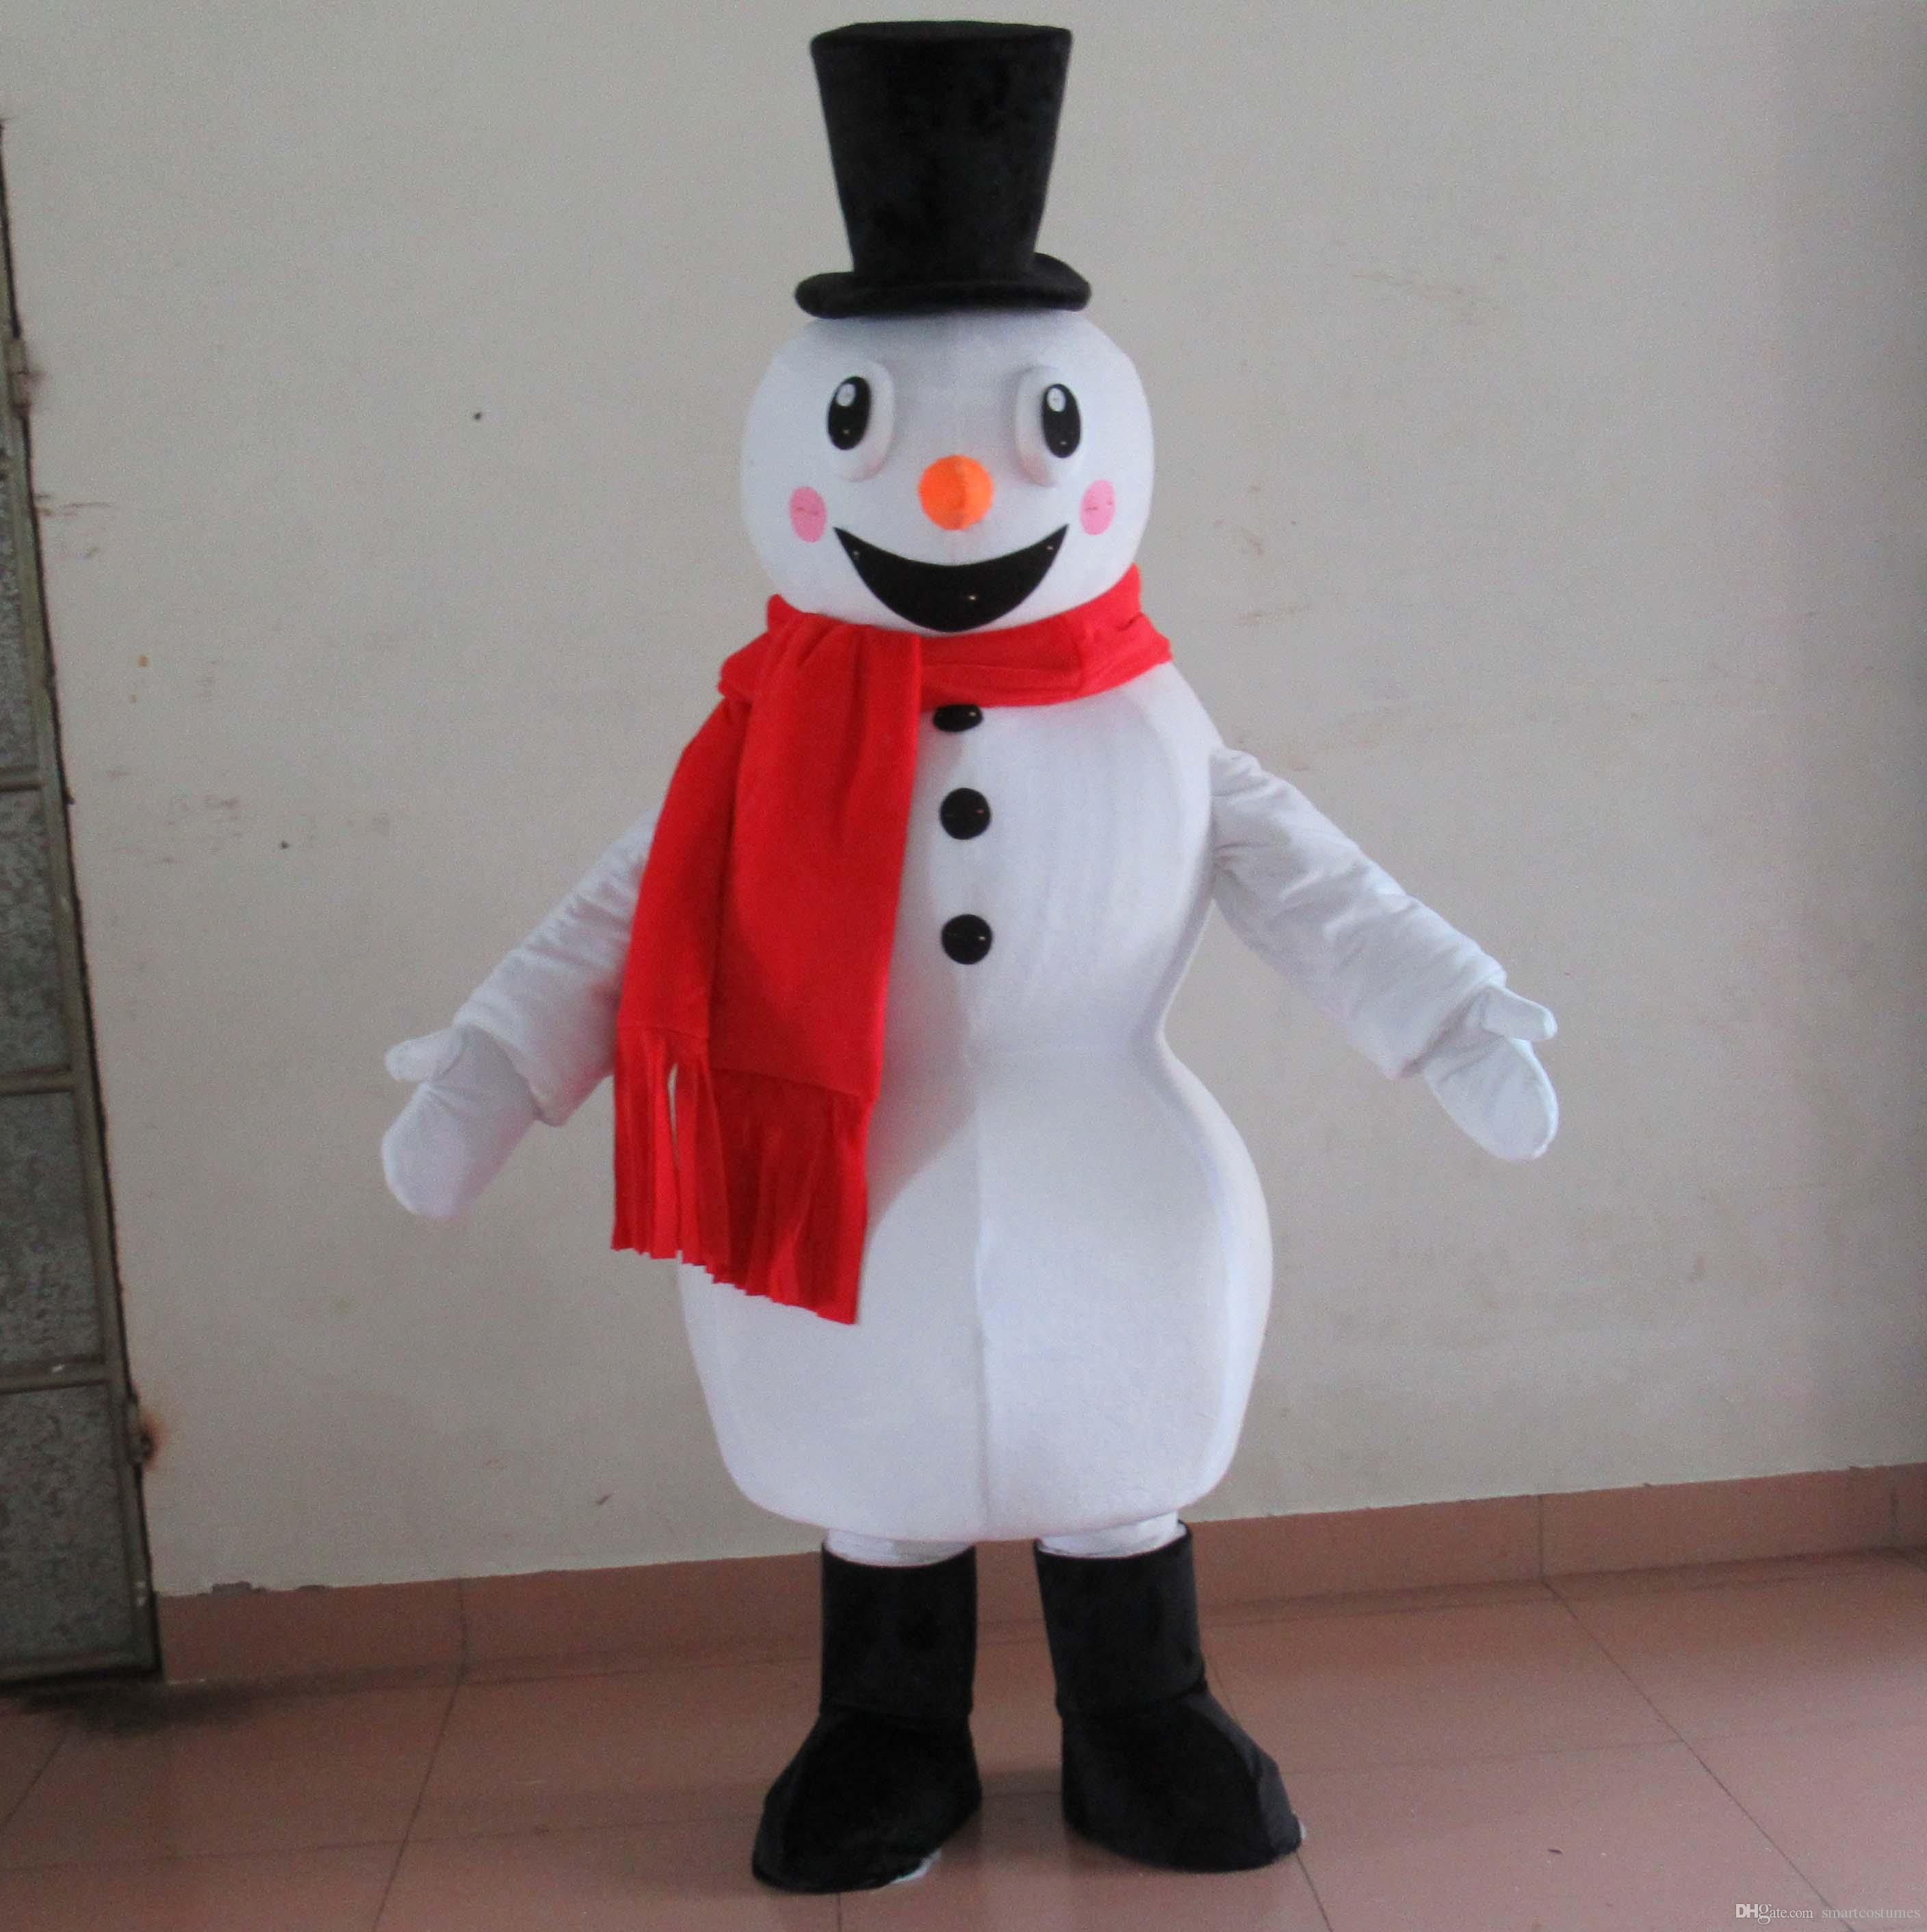 100% Real Photos Of The Snow White Snowman Mascot Costume For Adult To Wear For Sale Mascot Head For Sale Customized Costumes From Smartcostumes ... & 100% Real Photos Of The Snow White Snowman Mascot Costume For Adult ...